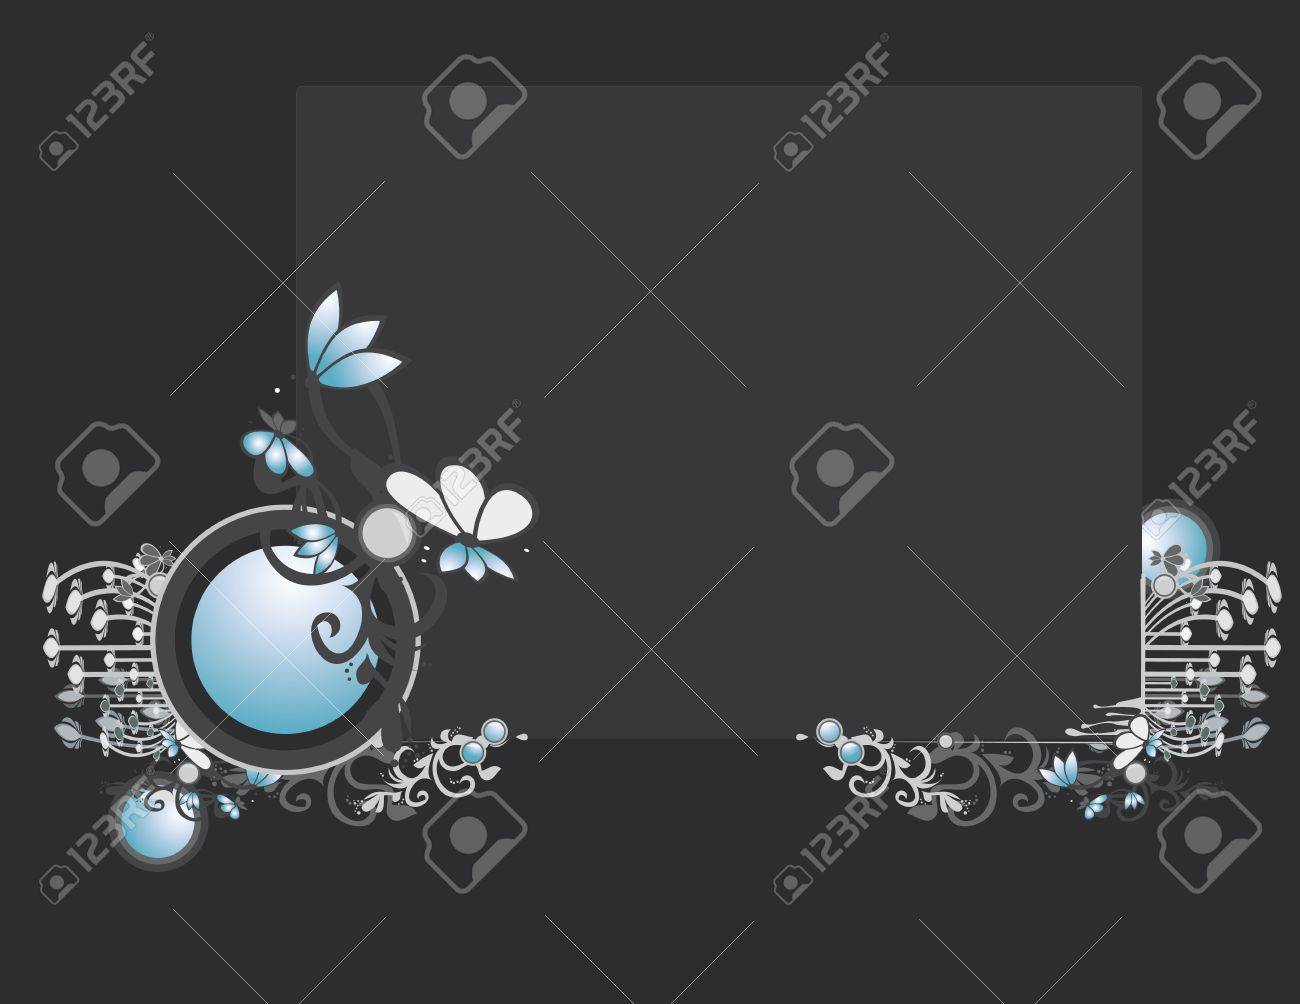 Gray blue abstract frame and background with circular elements Stock Vector - 7315143